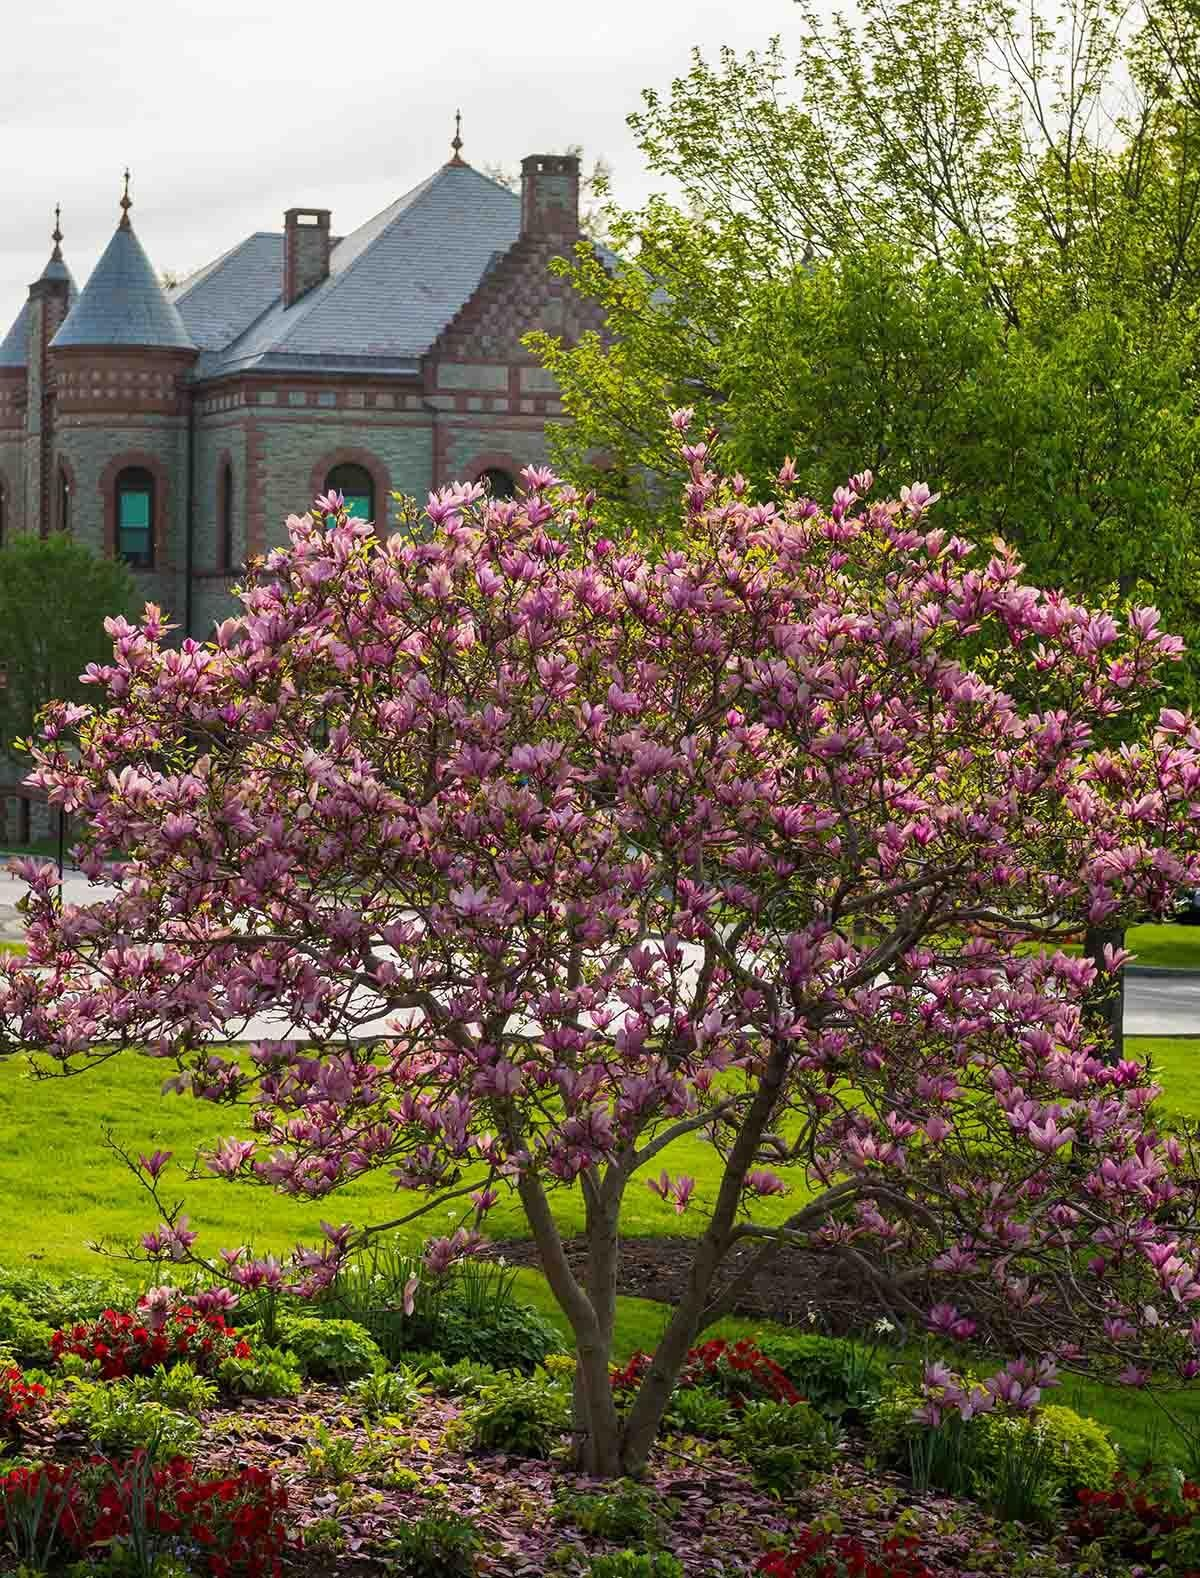 Colgate campus with blossoming trees